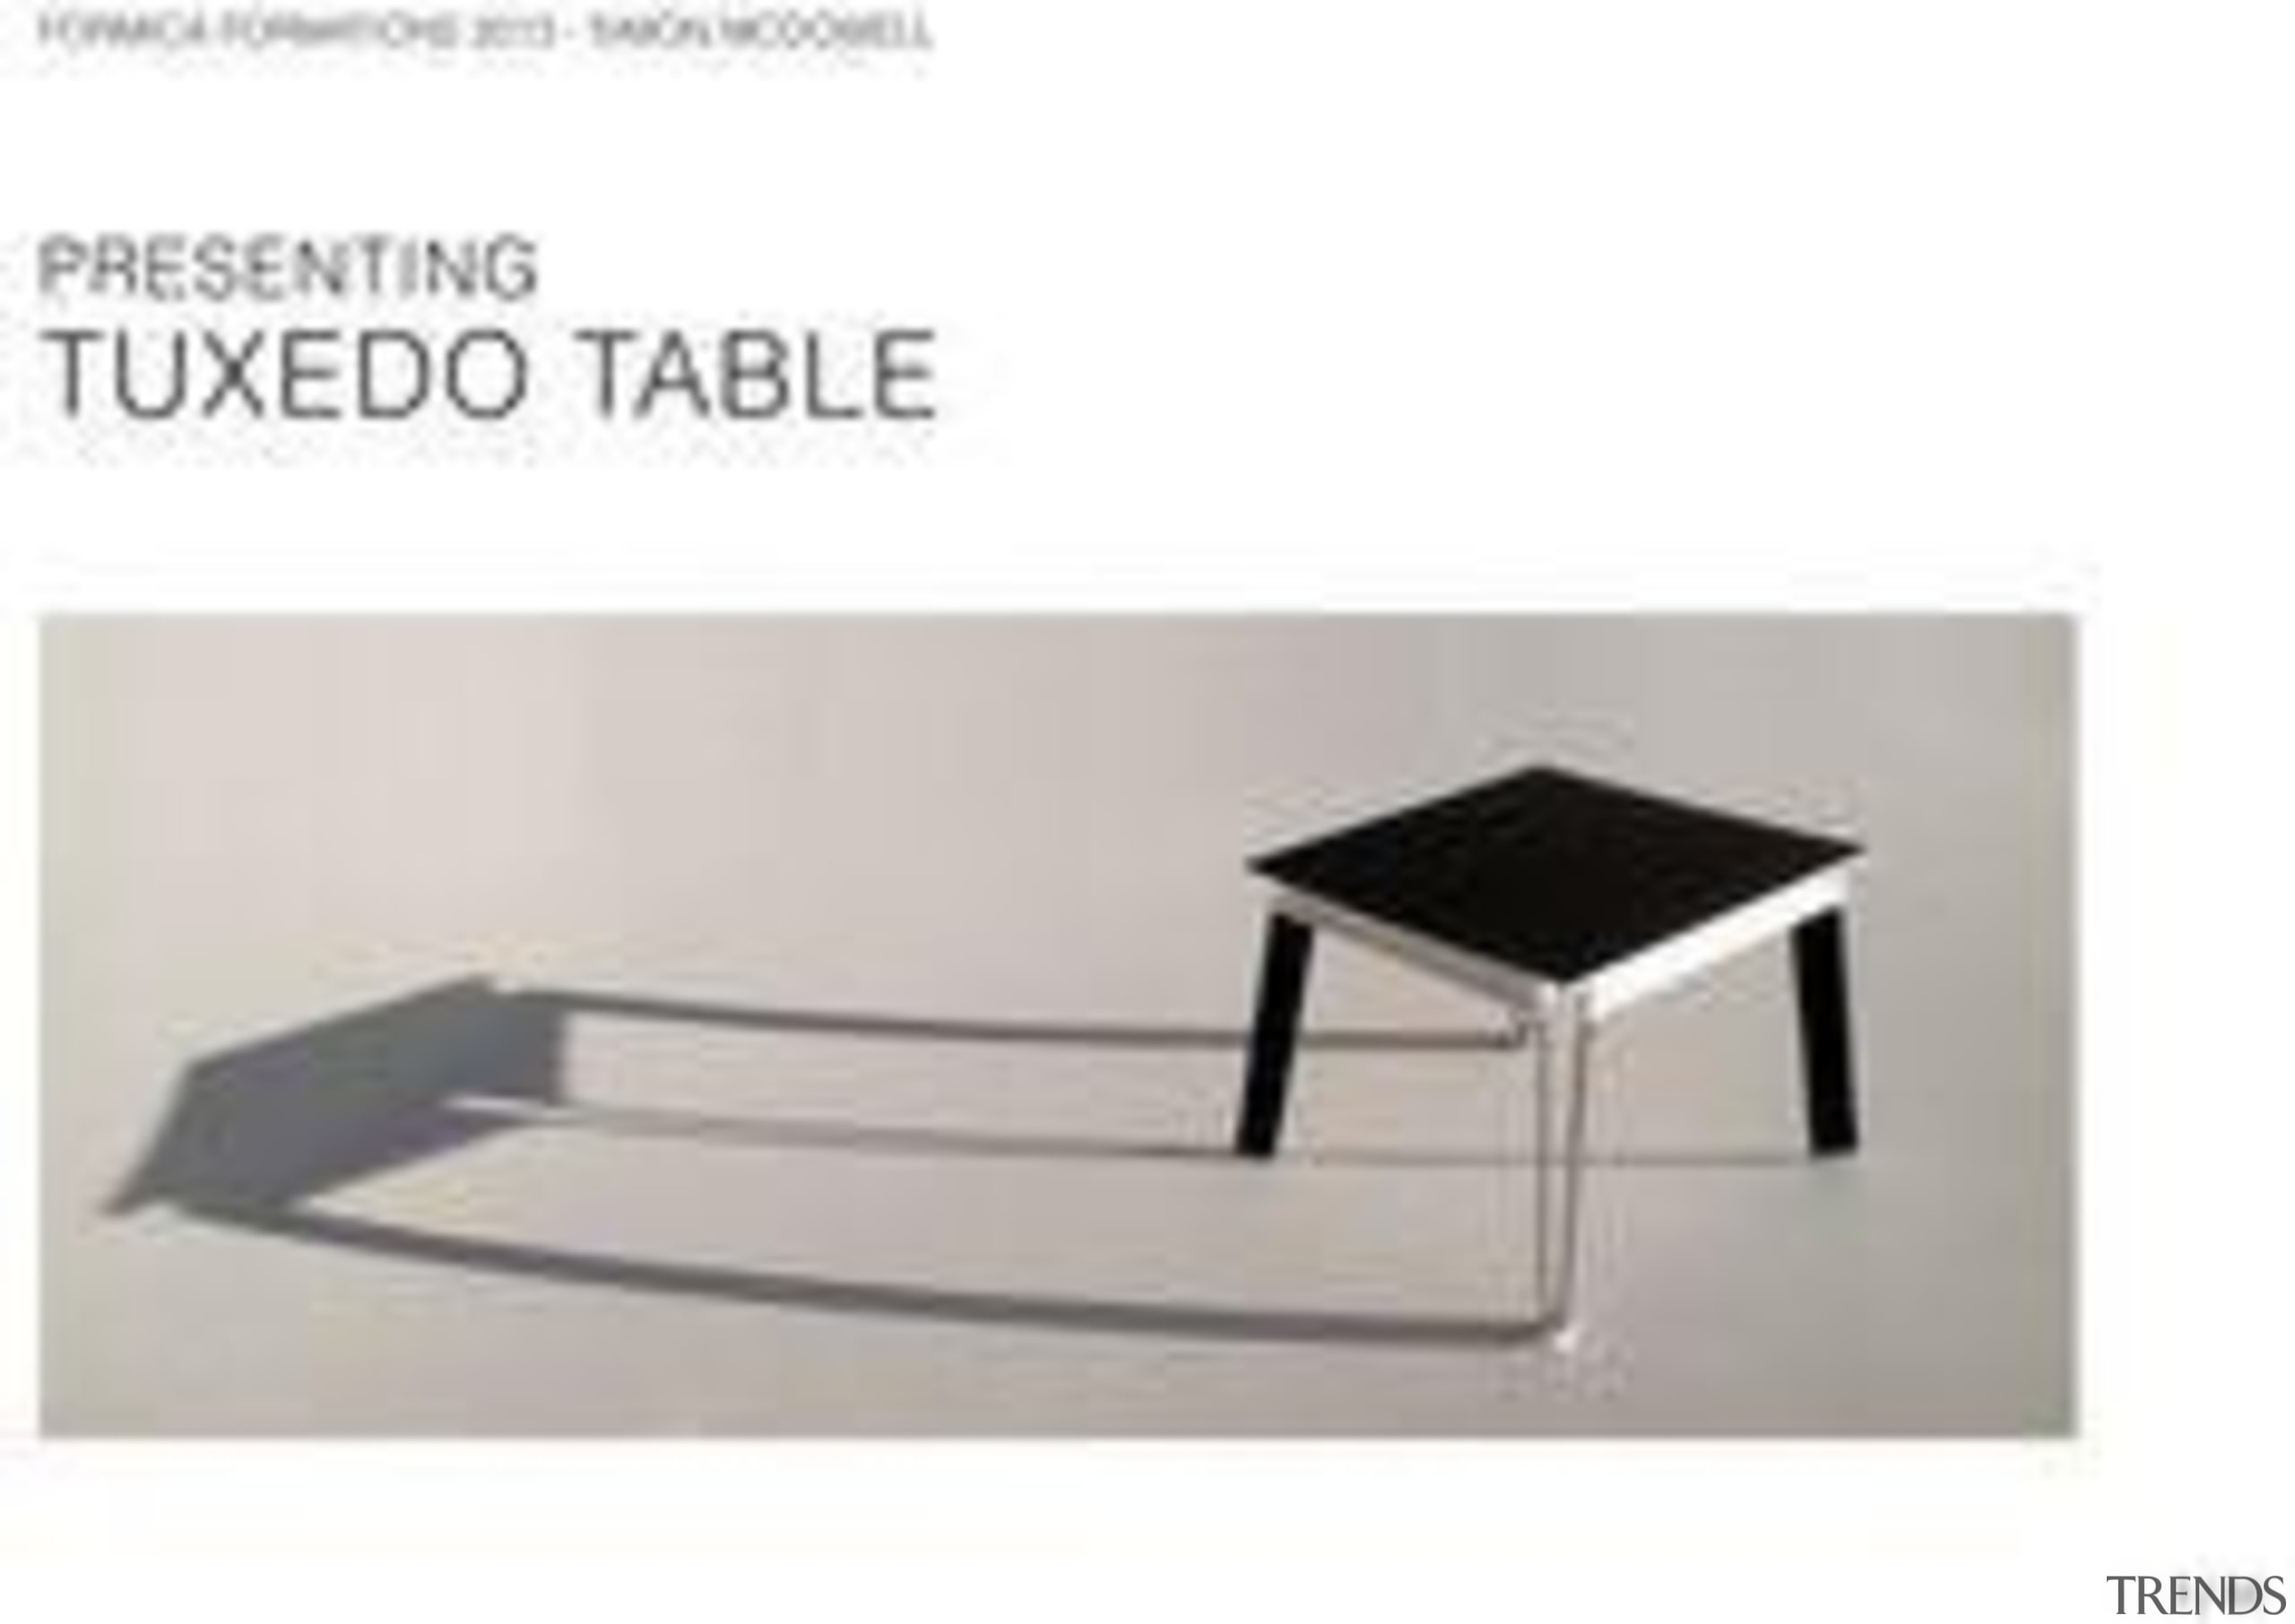 by Simon Lee - Tuxedo Table - angle angle, furniture, product, product design, table, white